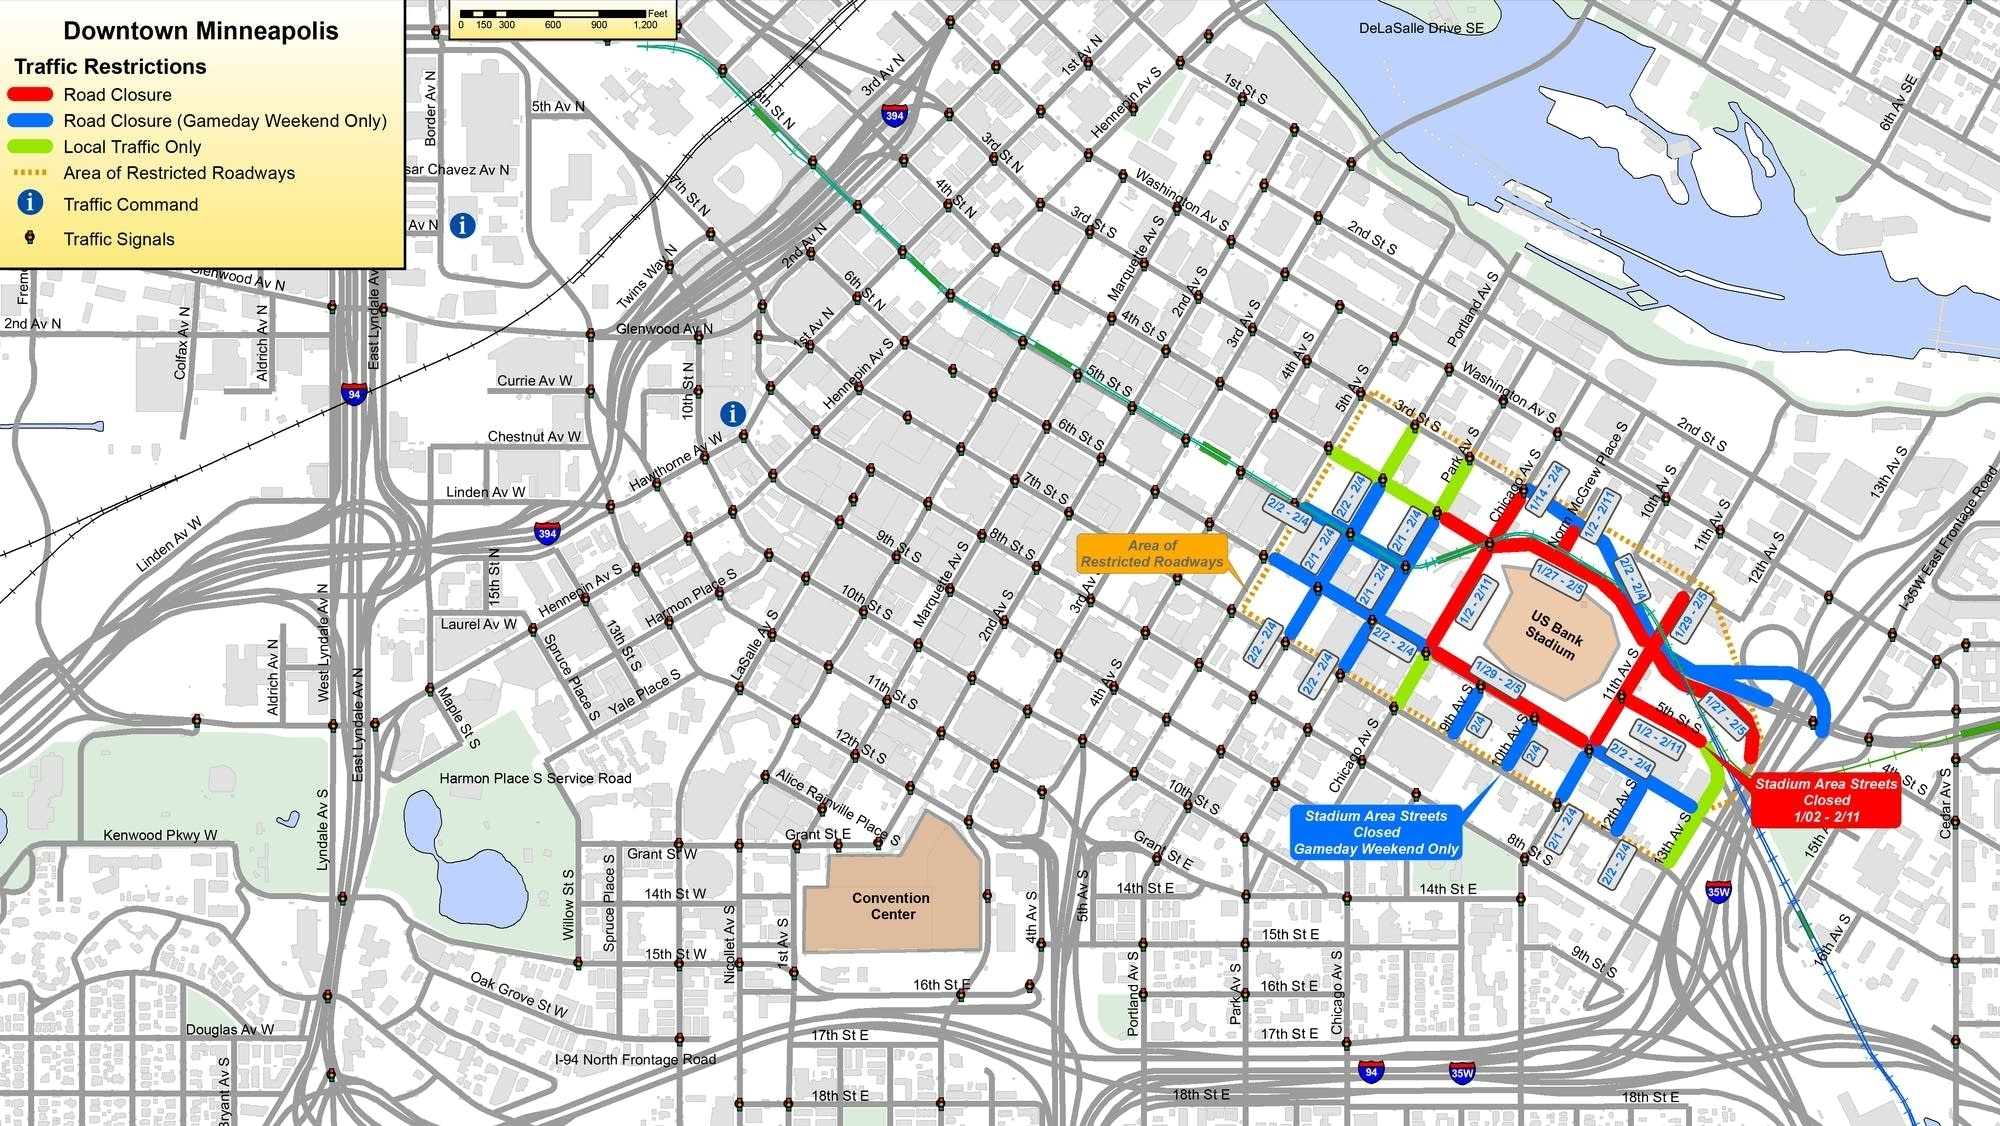 Super Bowl Street Closures Begin In Minneapolis | Mpr News inside Map Of Street Closures For Super Bowl